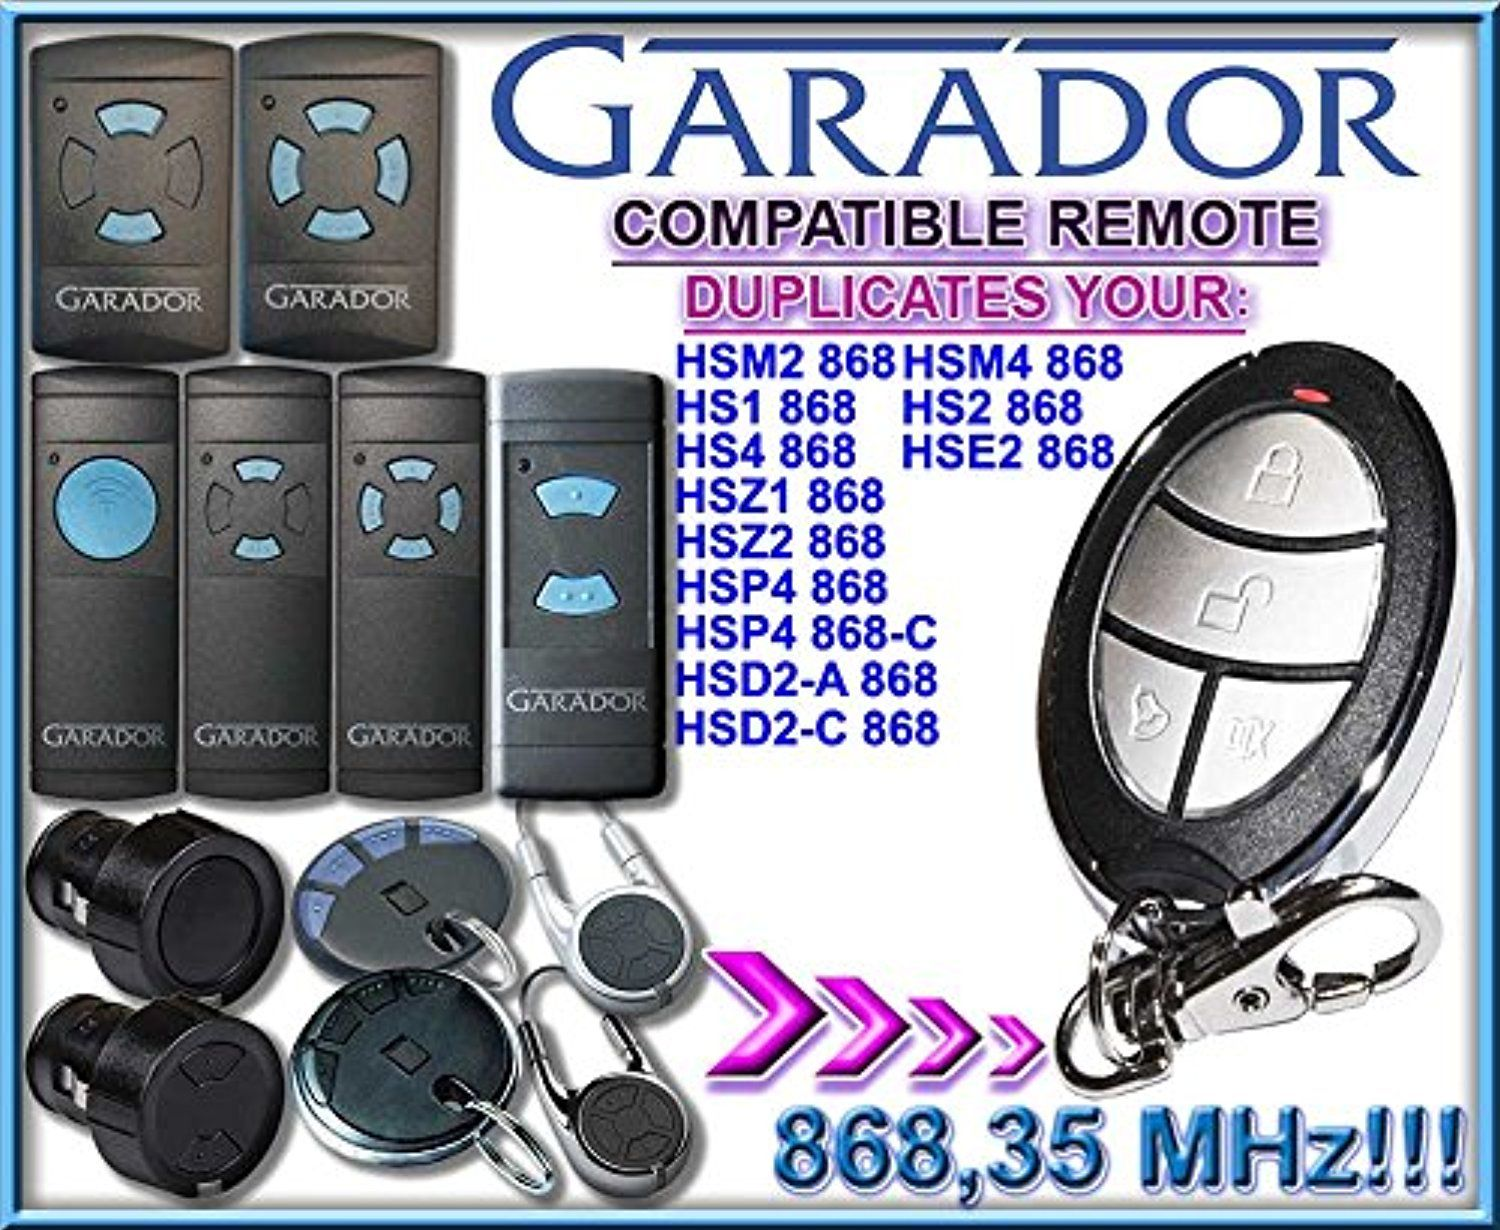 GARADOR- HSM2 / HSM4 / HS1 / HS2 / HS4 / HSE2 / HSD2-A / HSD2-C / HSP4/ HSP4-C / HSZ1 / HSZ2 compatible remote control transmitter replacement, 868.3Mhz clone!!! -- Awesome products selected by Anna Churchill